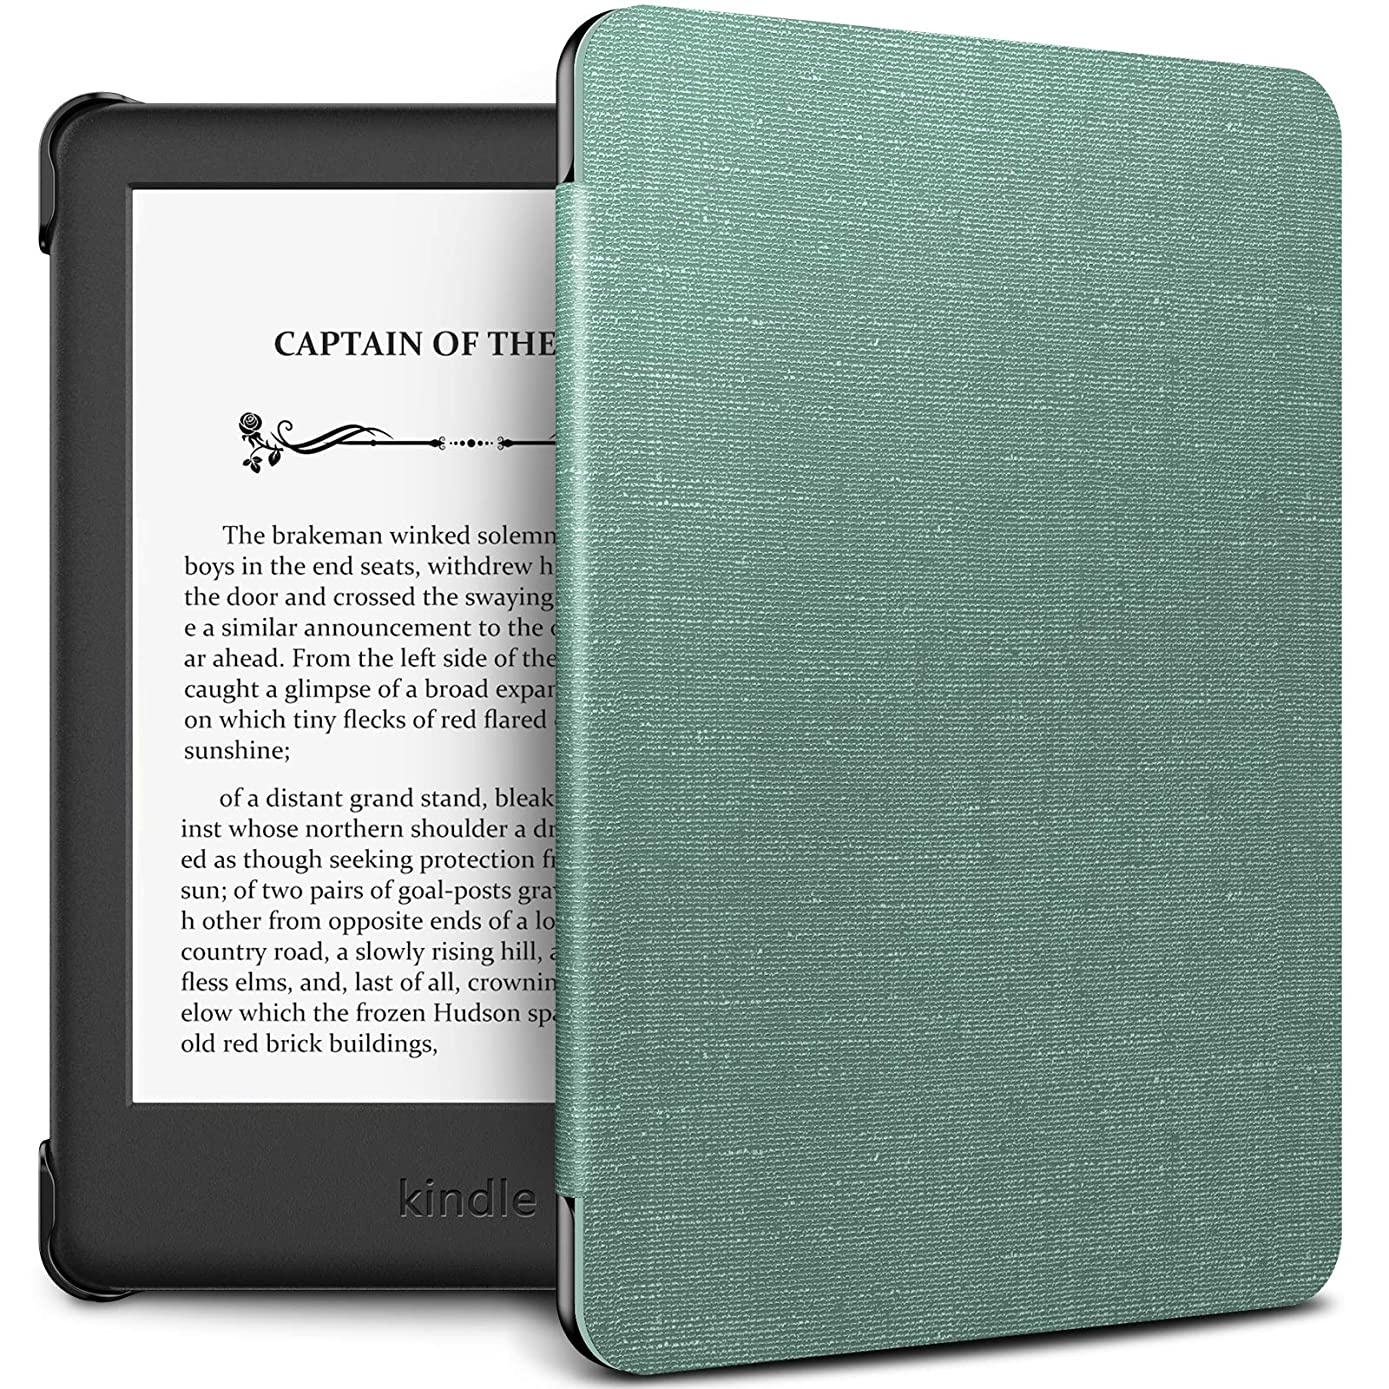 Infiland Kindle 10th Gen 2019 Case, Slim Shell Case Cover Auto Wake/Sleep Compatible with All-New Kindle 10th Generation 2019 Release Only, Not Fit Kindle Paperwhite or Kindle 8th Gen, Mint Green